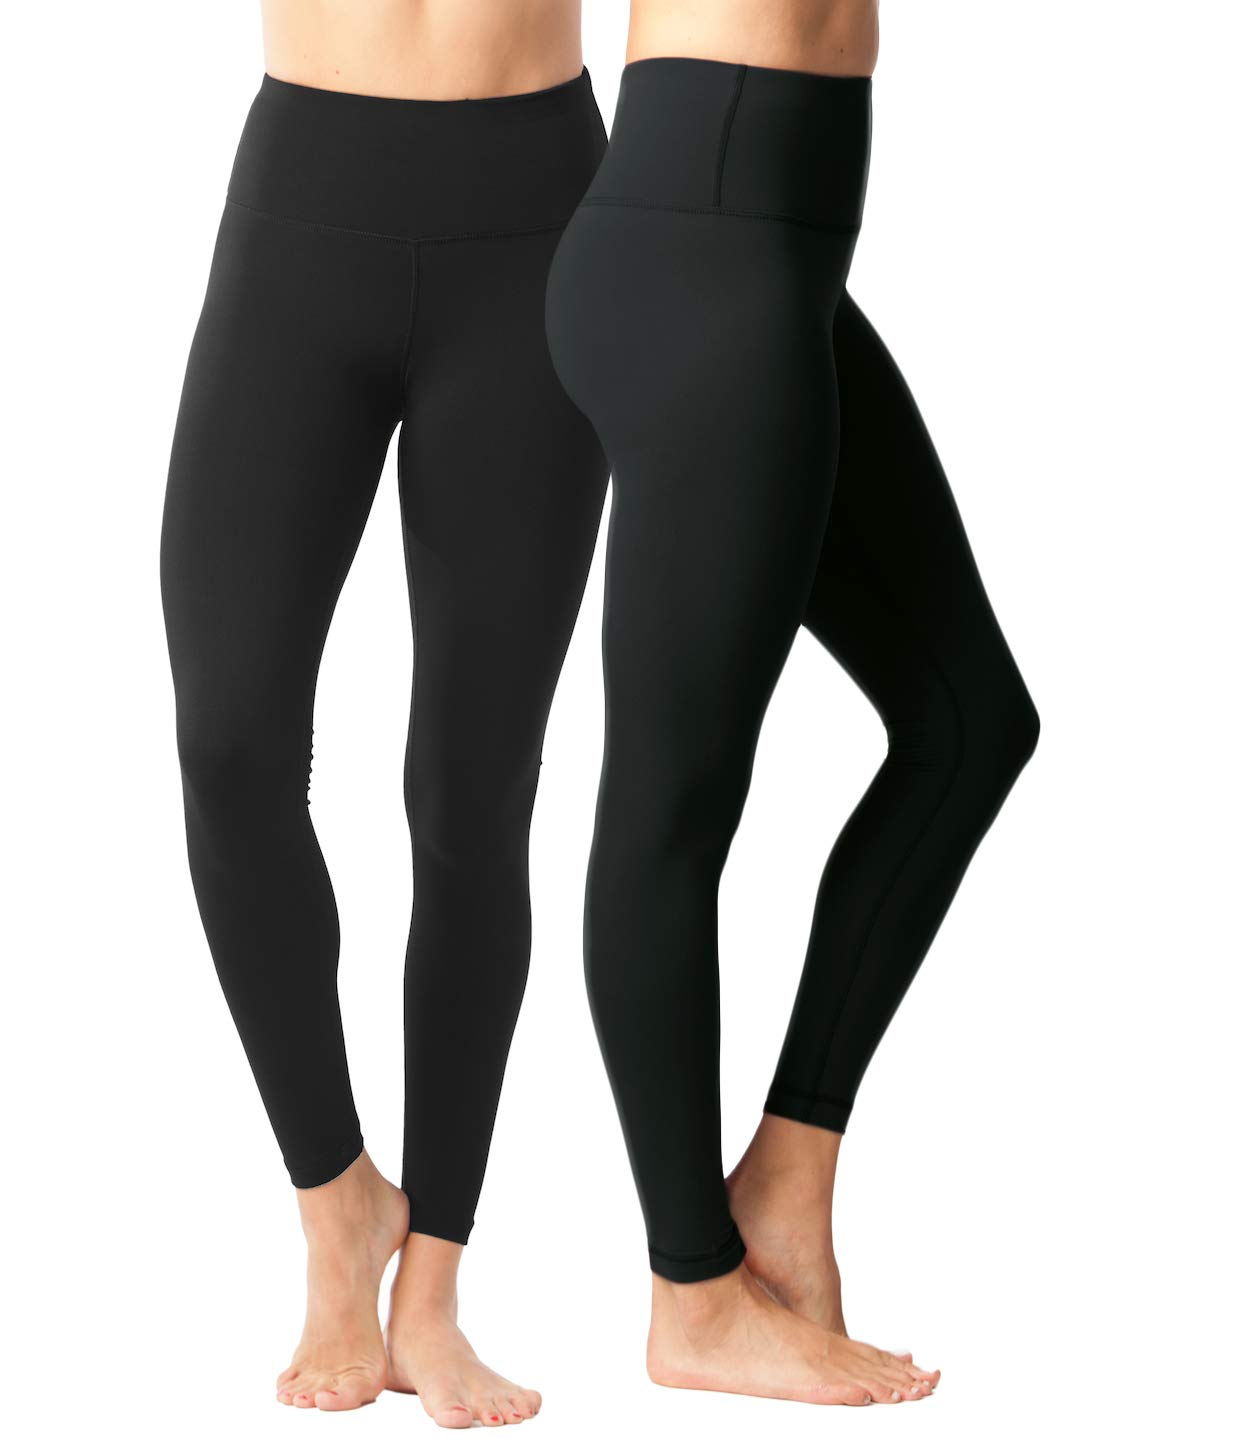 Yogalicious High Waist Ultra Soft Lightweight Leggings - High Rise Yoga Pants - 2 Pack - Black and New Olive - XS by Yogalicious